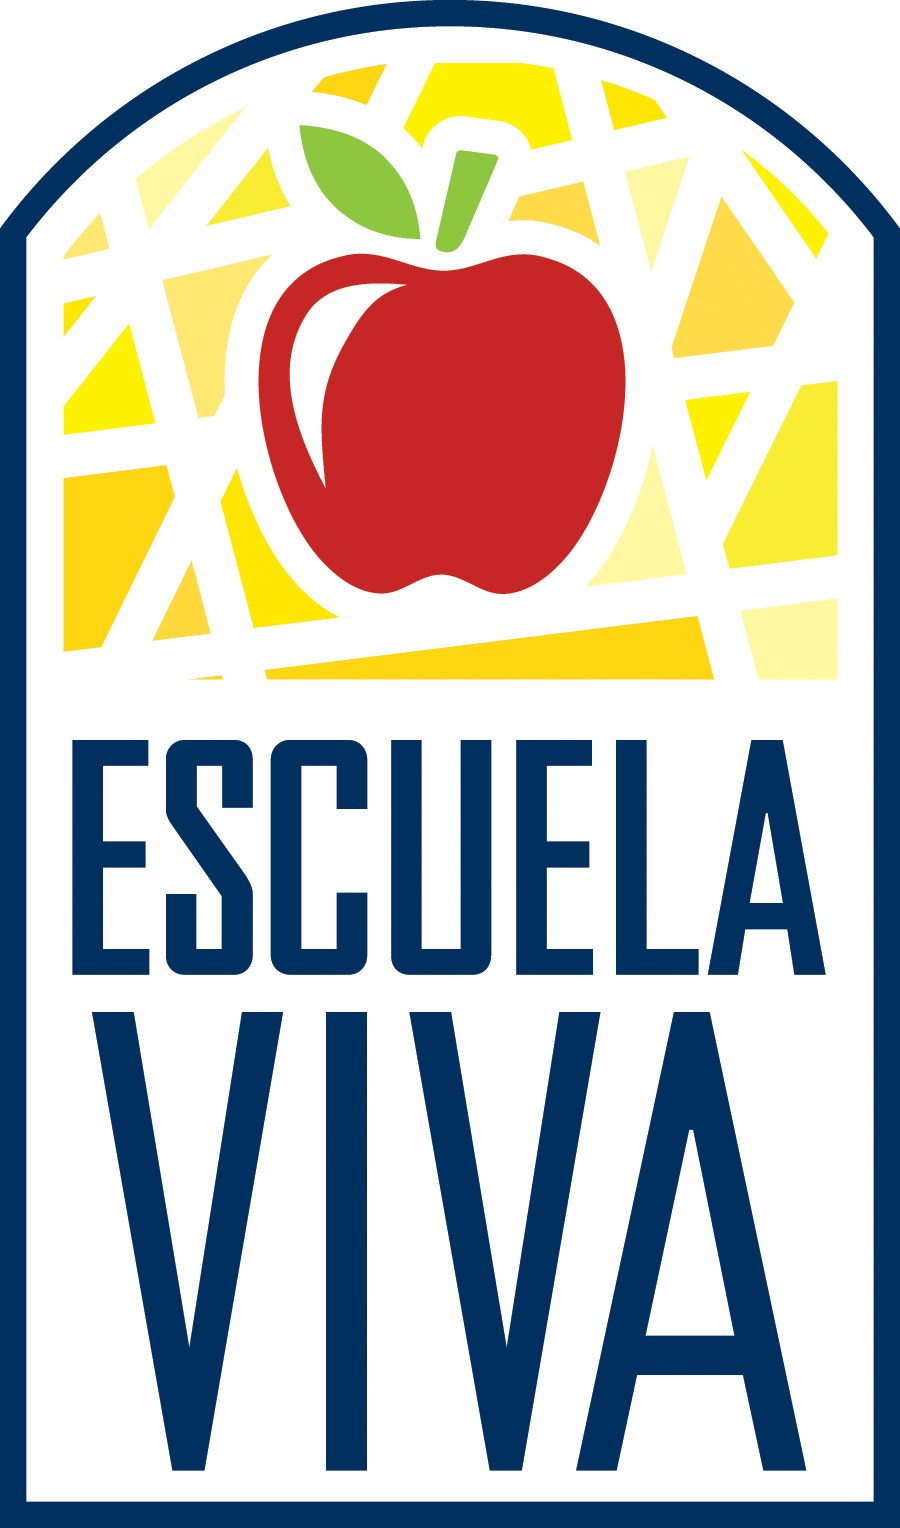 Escuelaviva_logo_color-1original